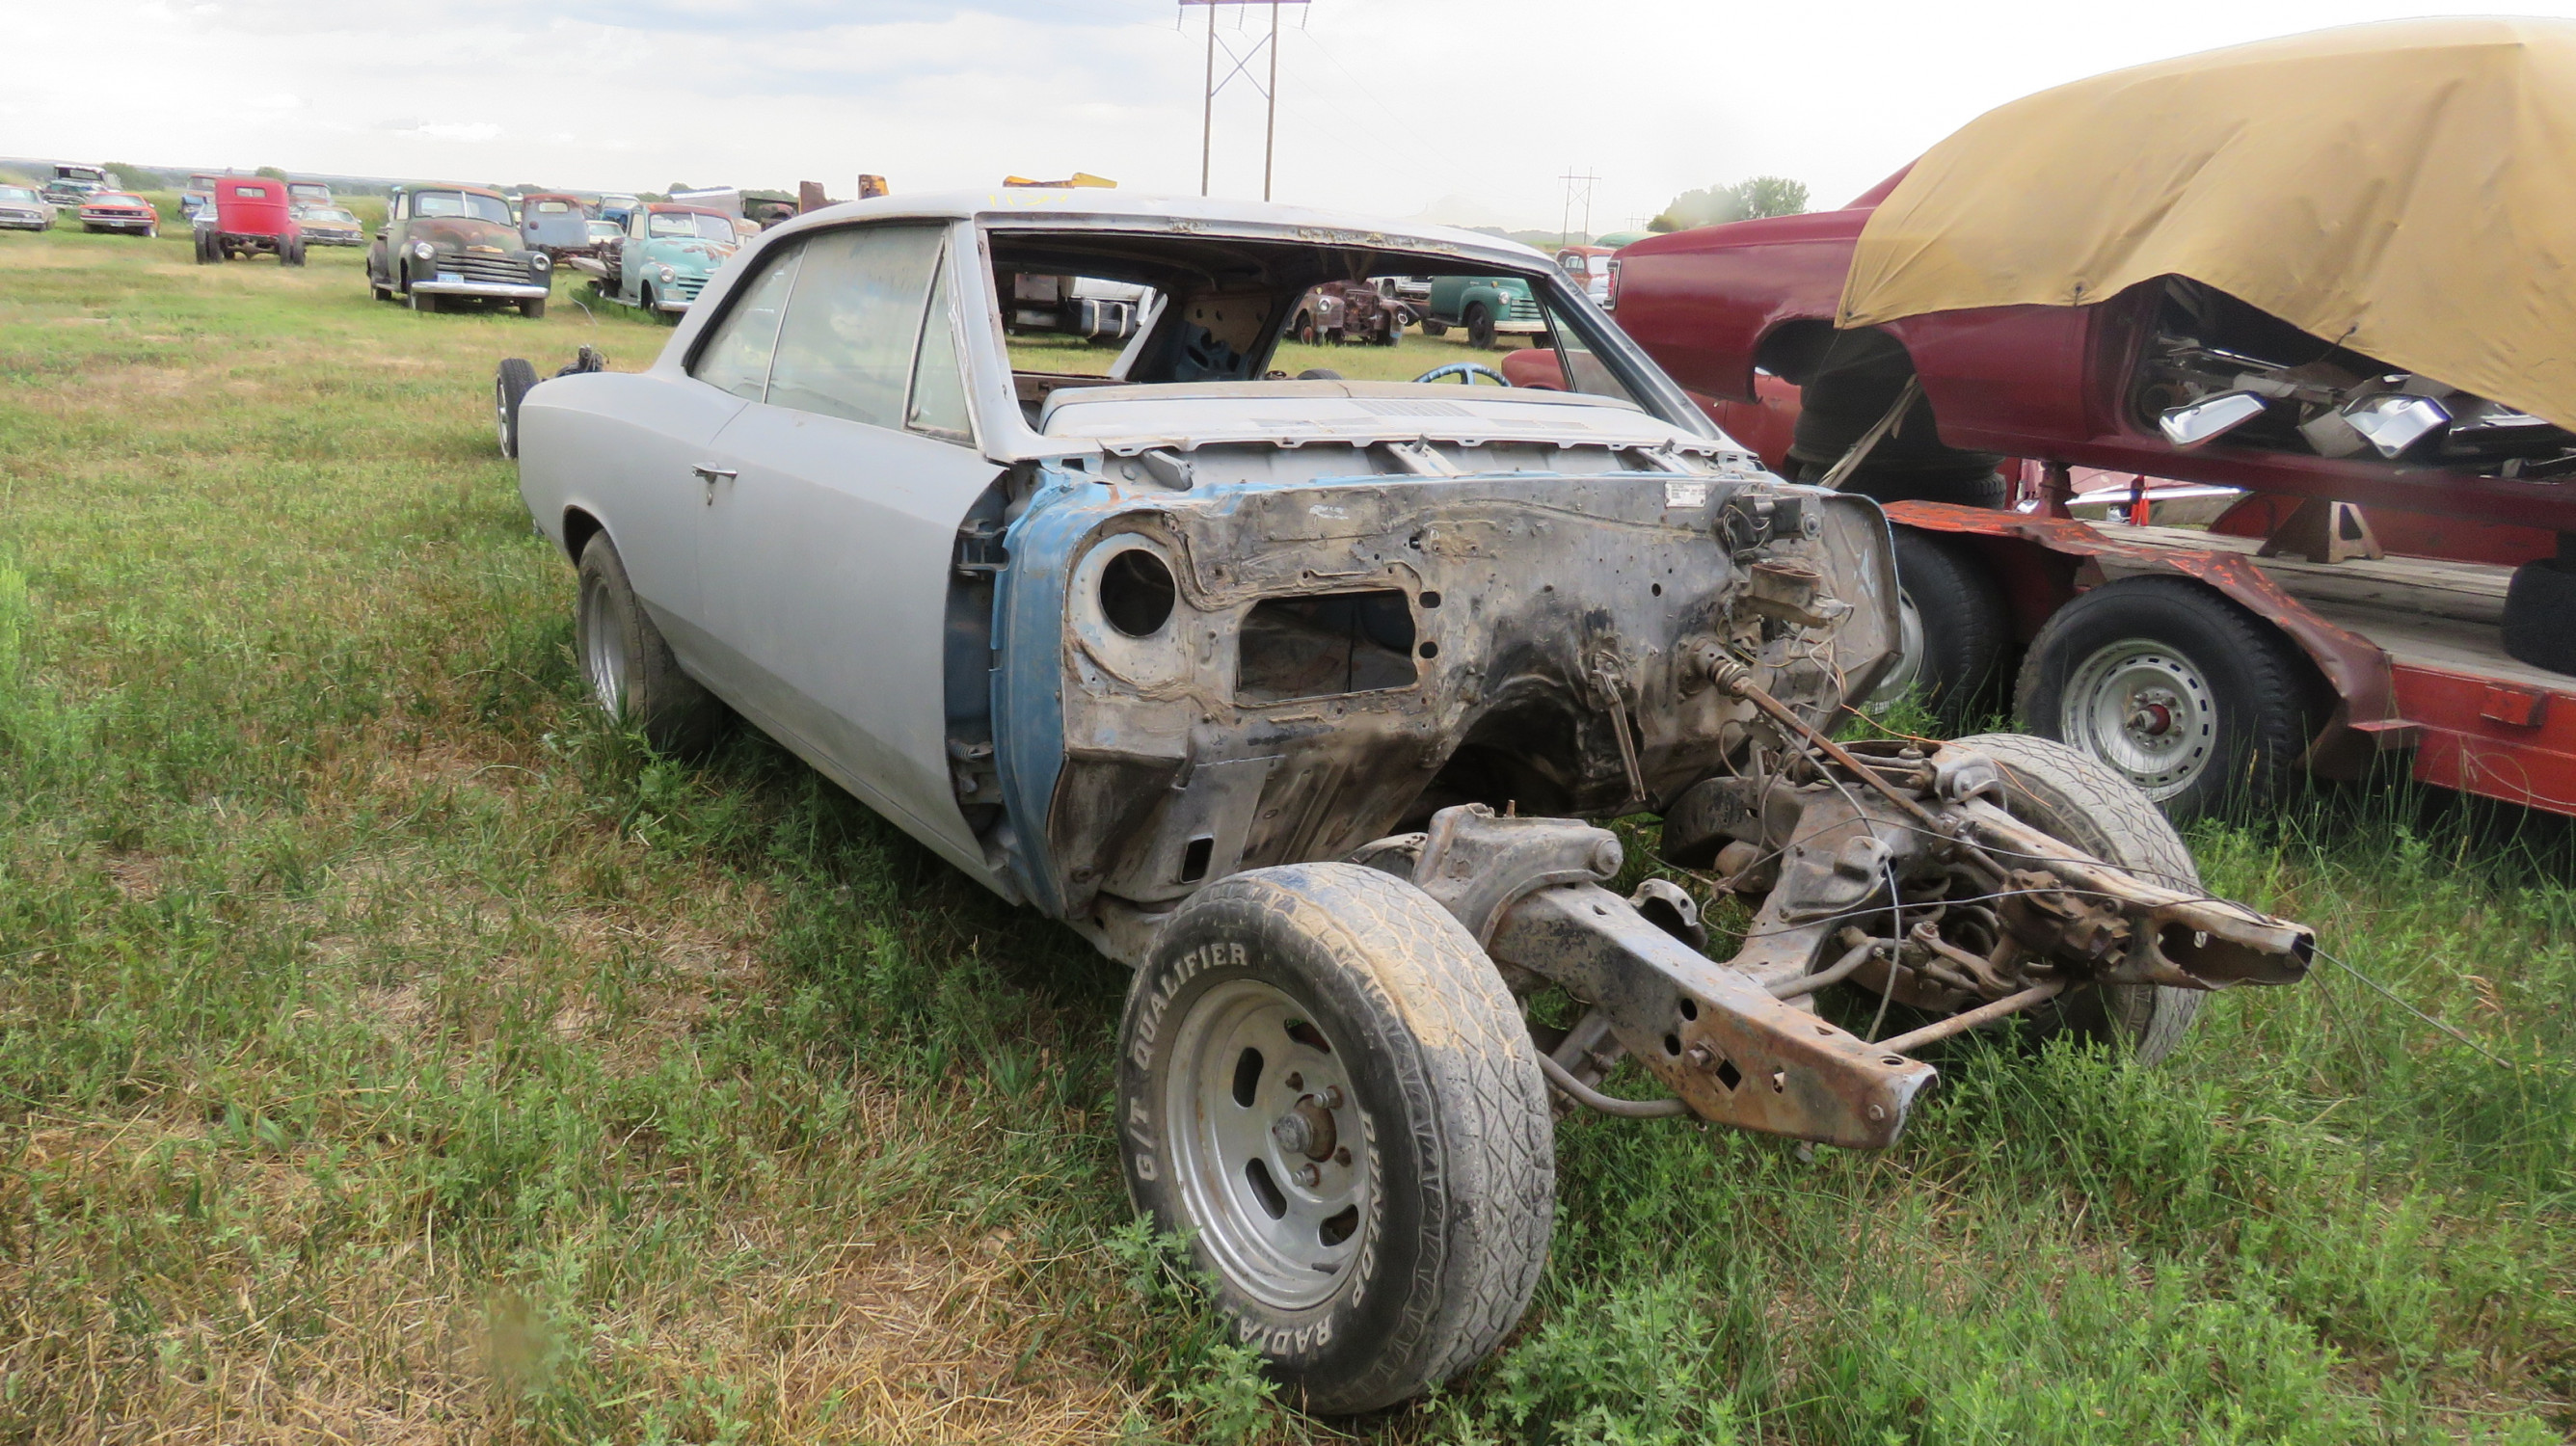 1967 CHEVROLET CHEVELLE ROLLING BODY FOR PROJECT - Image 1